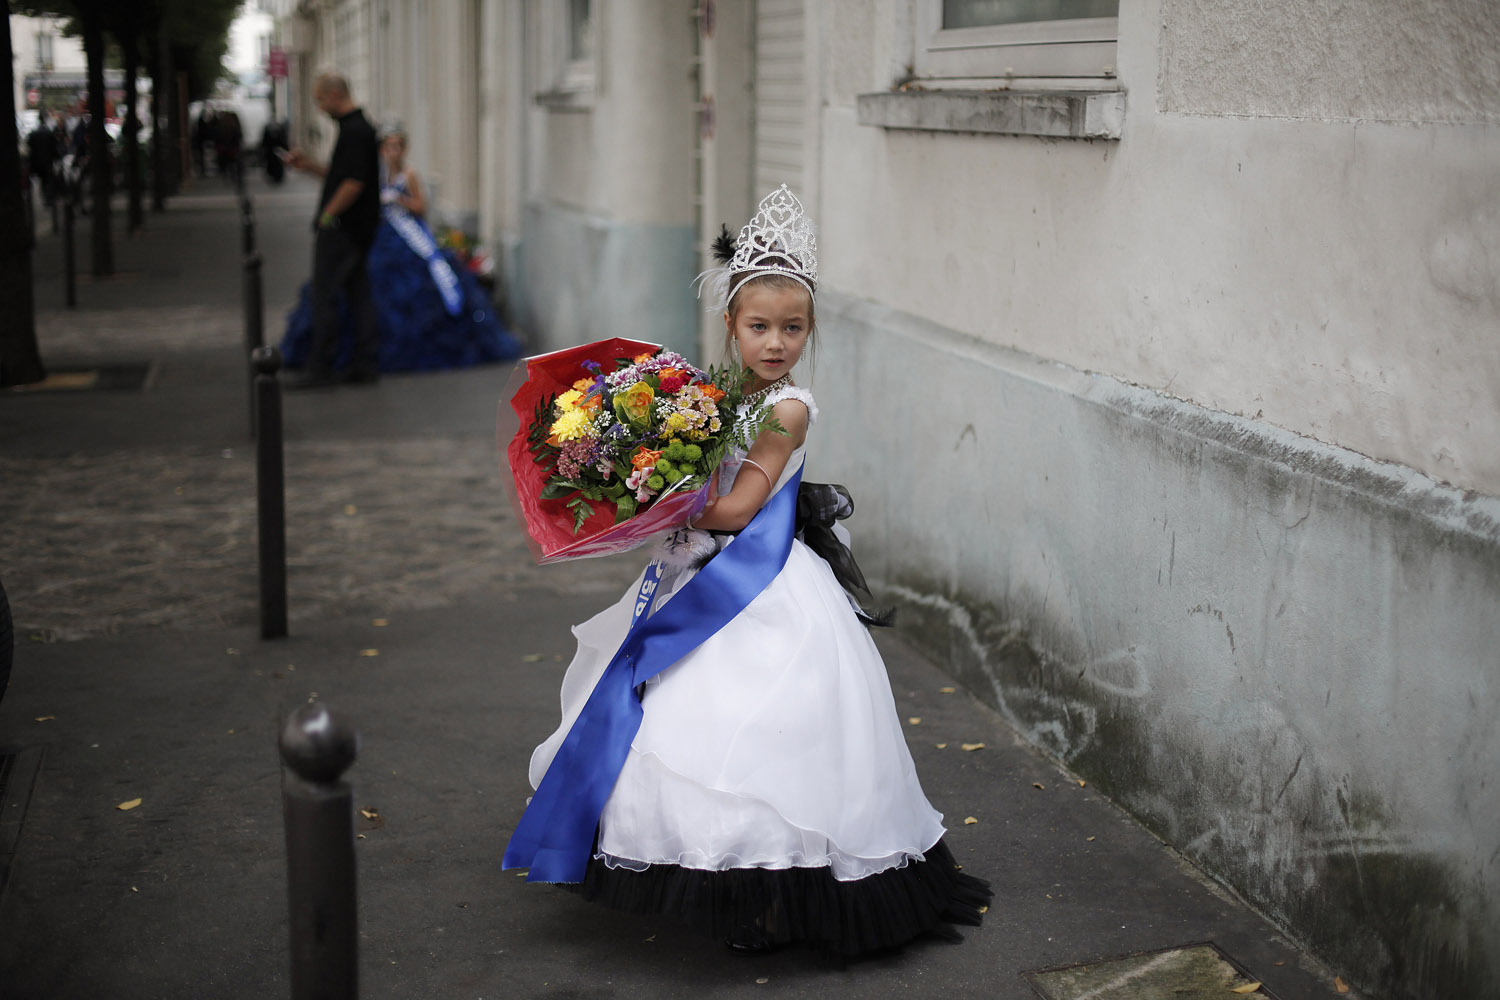 Sept. 28, 2013. Lou Hamrani, 6, walks in the street after attending the Mini Miss model beauty contest in Paris, France.